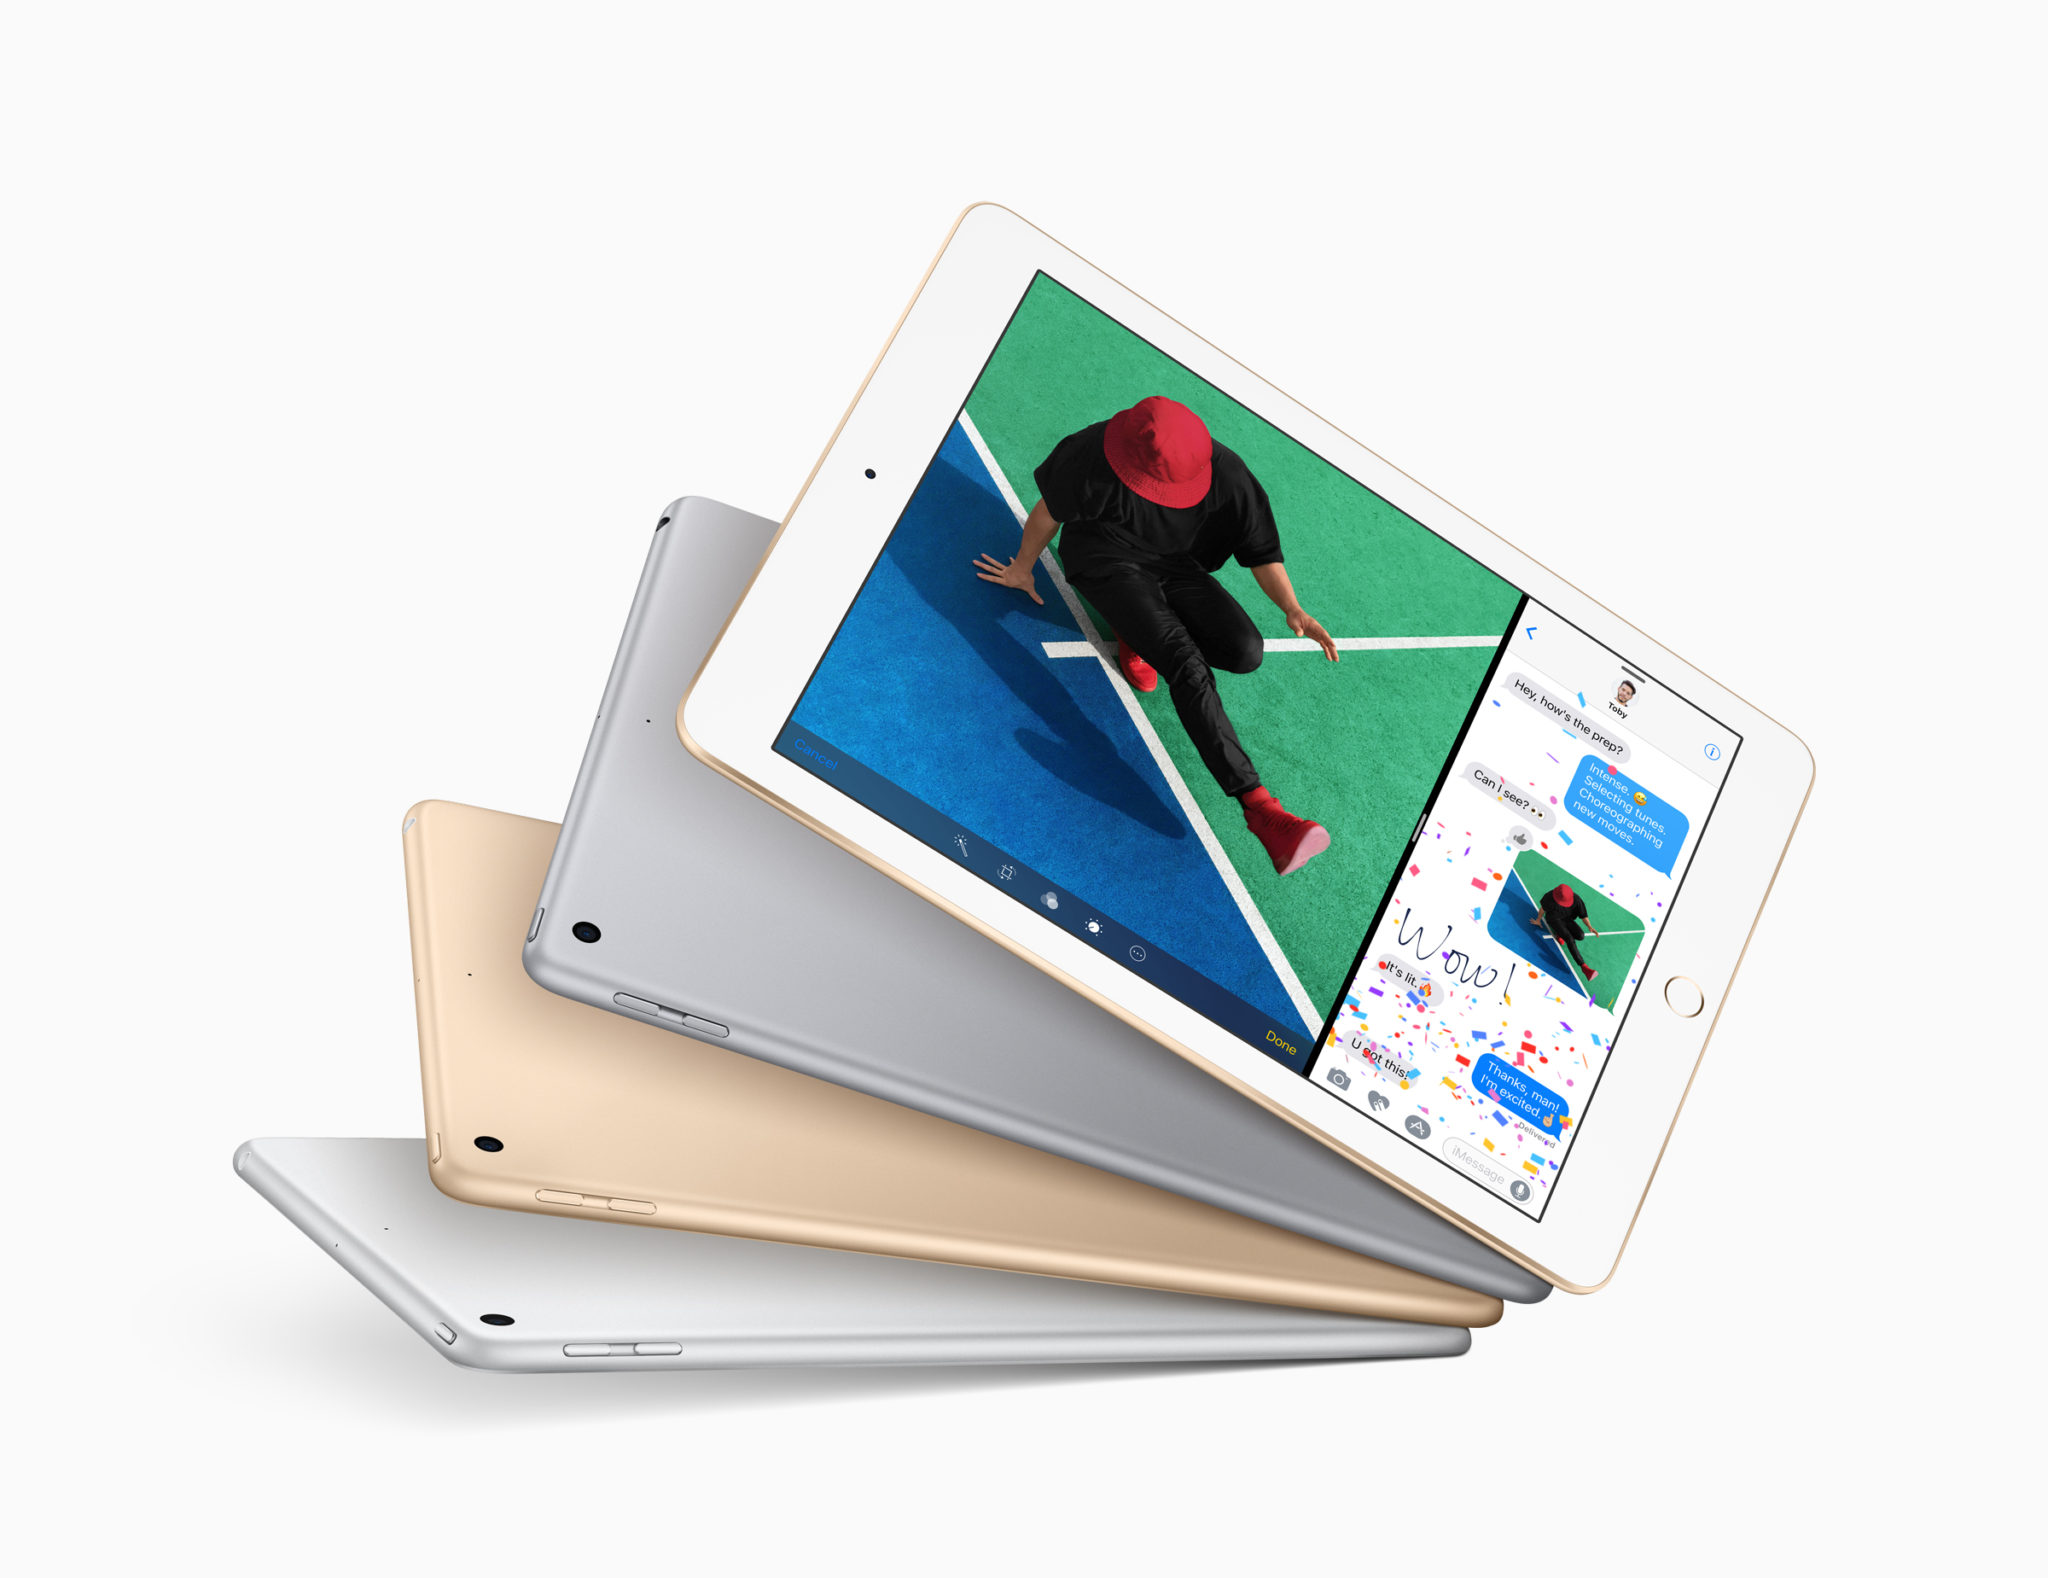 New 9.7-inch iPad (2017) colors